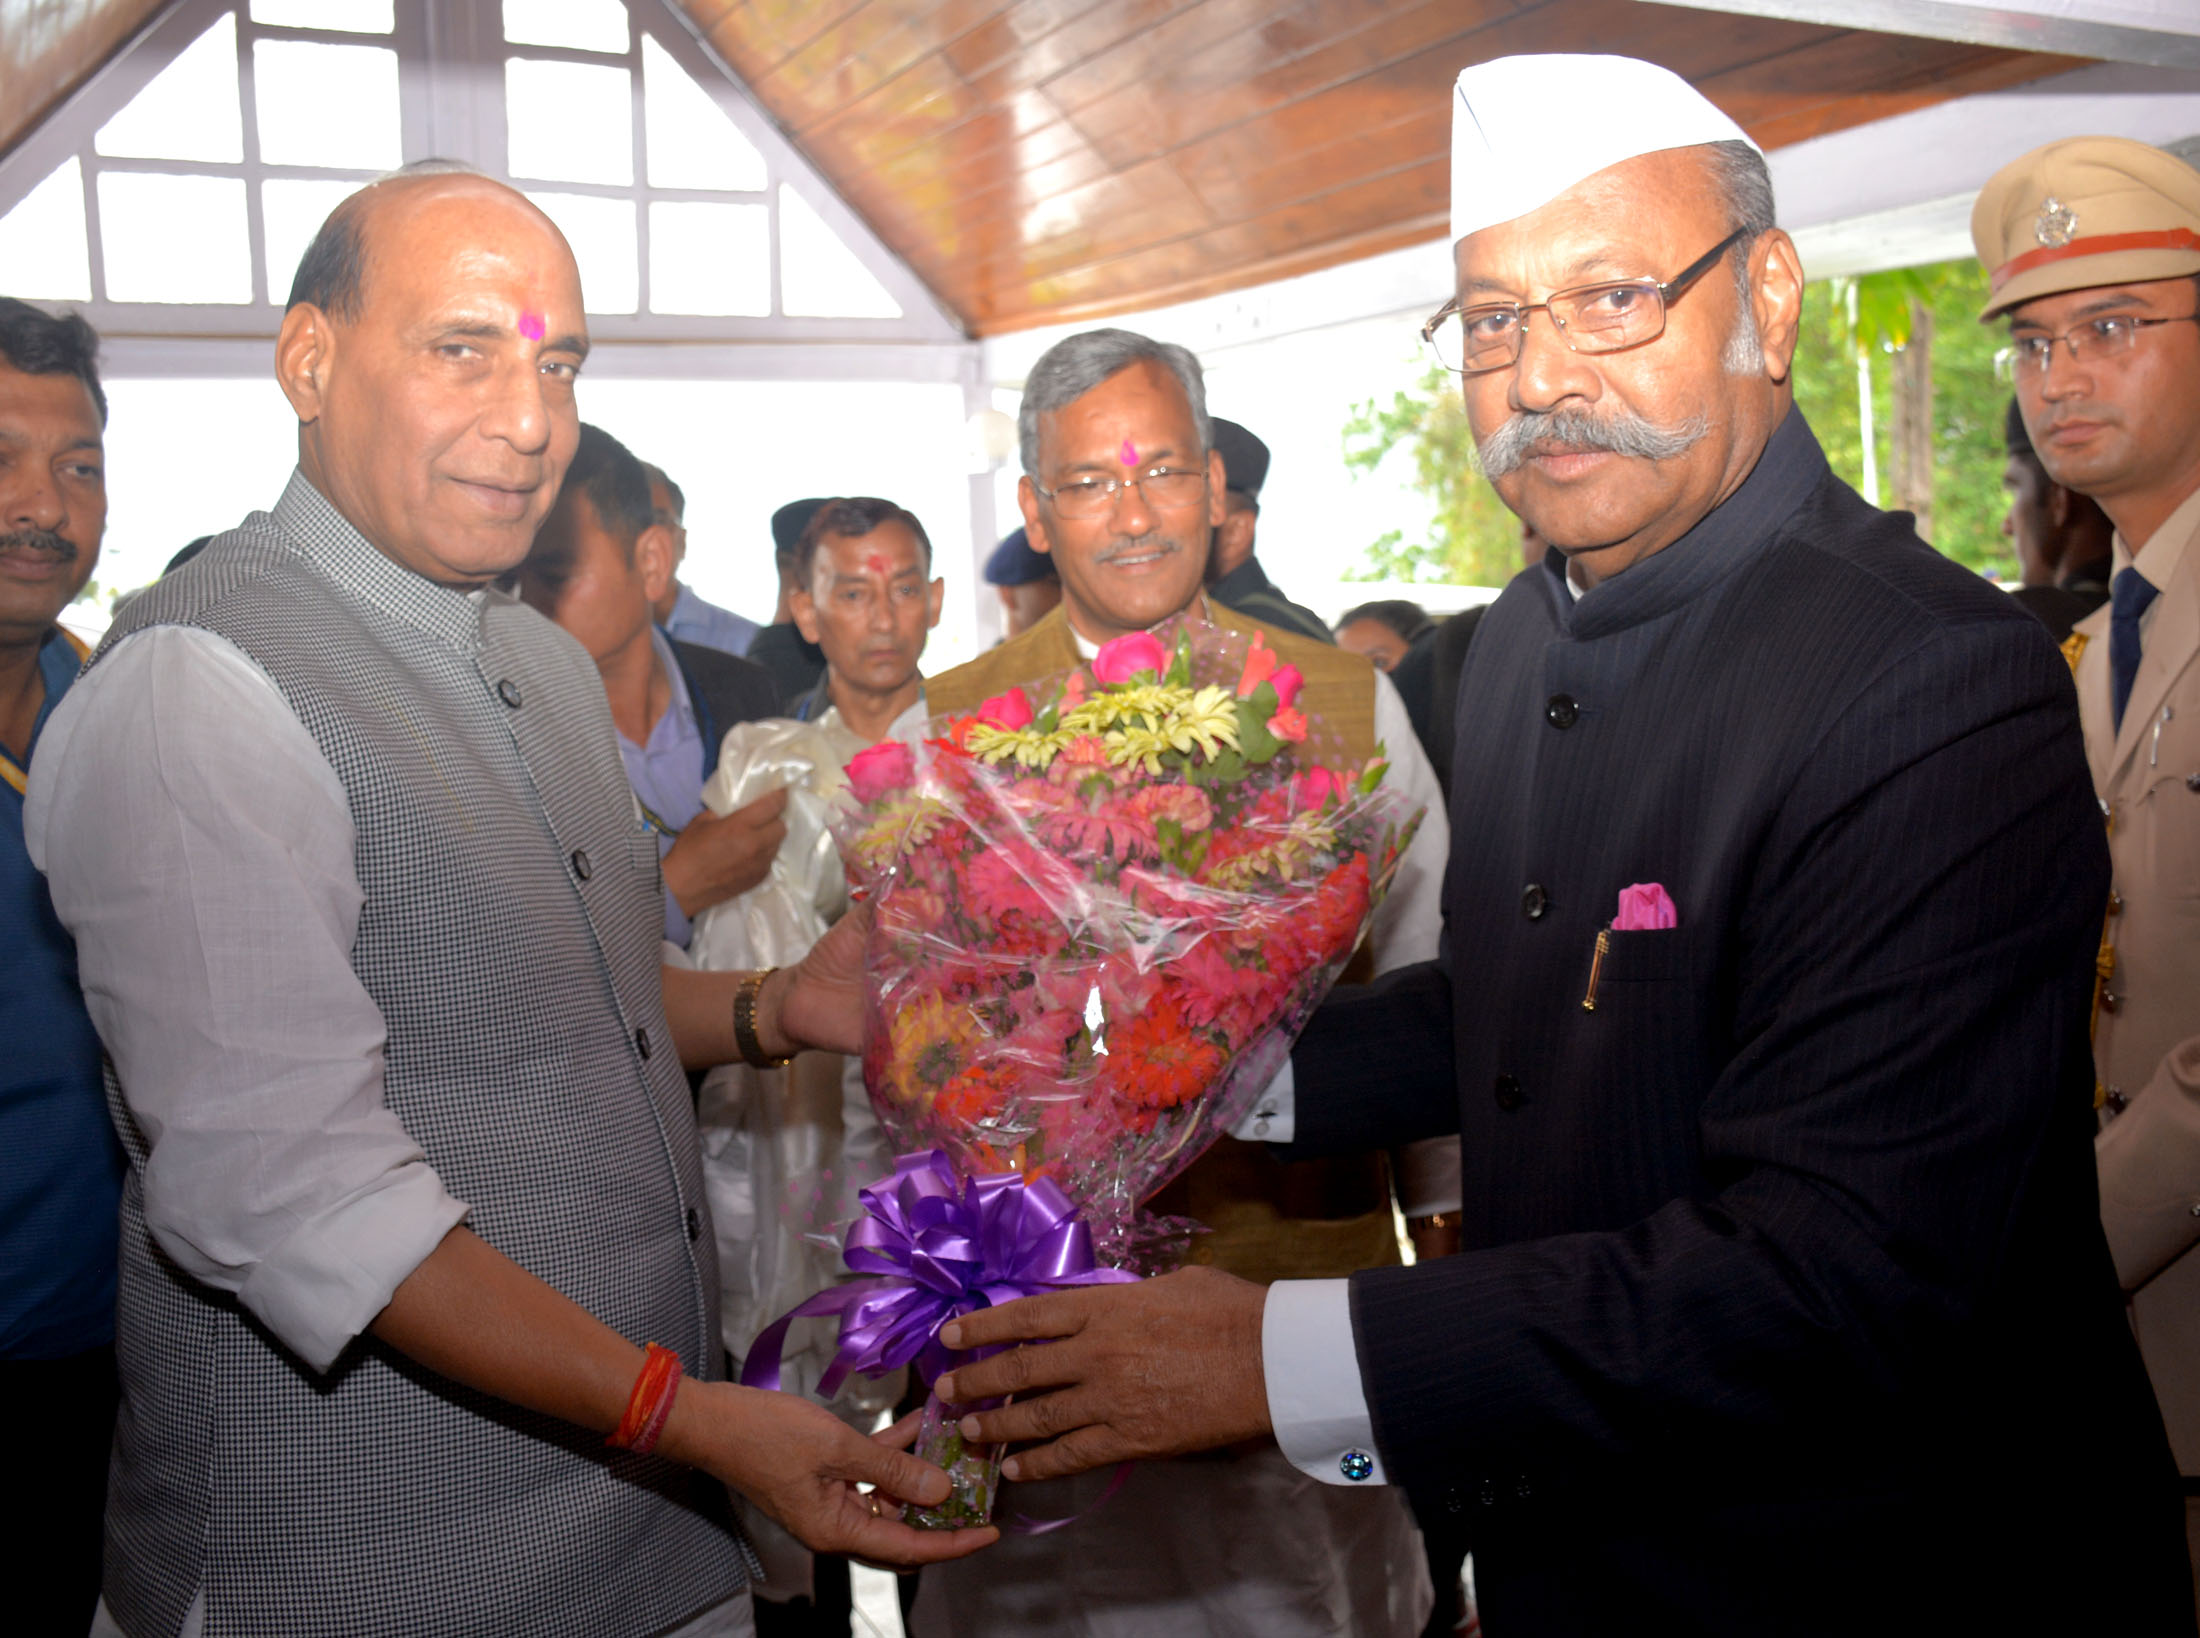 The Governor of Sikkim, Shri Shriniwas Patil welcoming the Union Home Minister, Shri Rajnath Singh, in Gangtok, Sikkim on May 19, 2017.